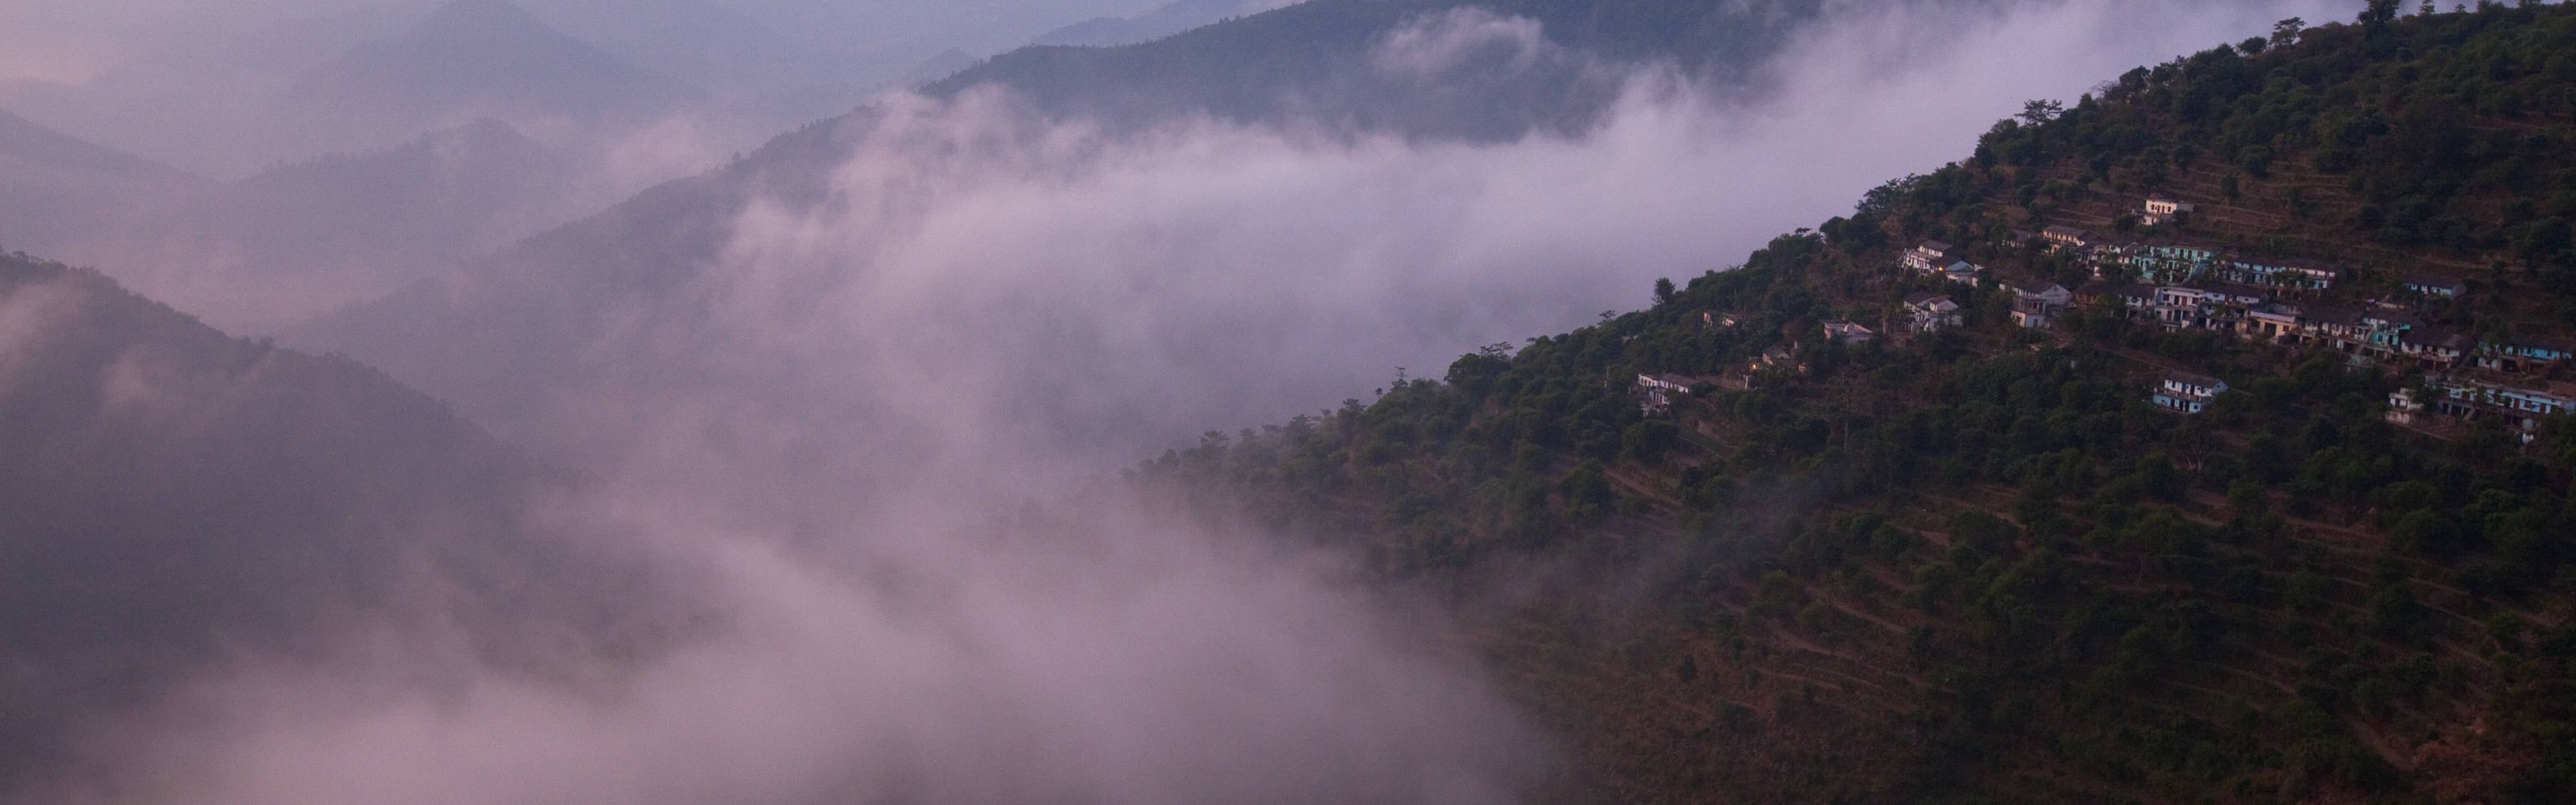 The morning clouds and fog lift off the small towns in the lower Himalaya mountains.